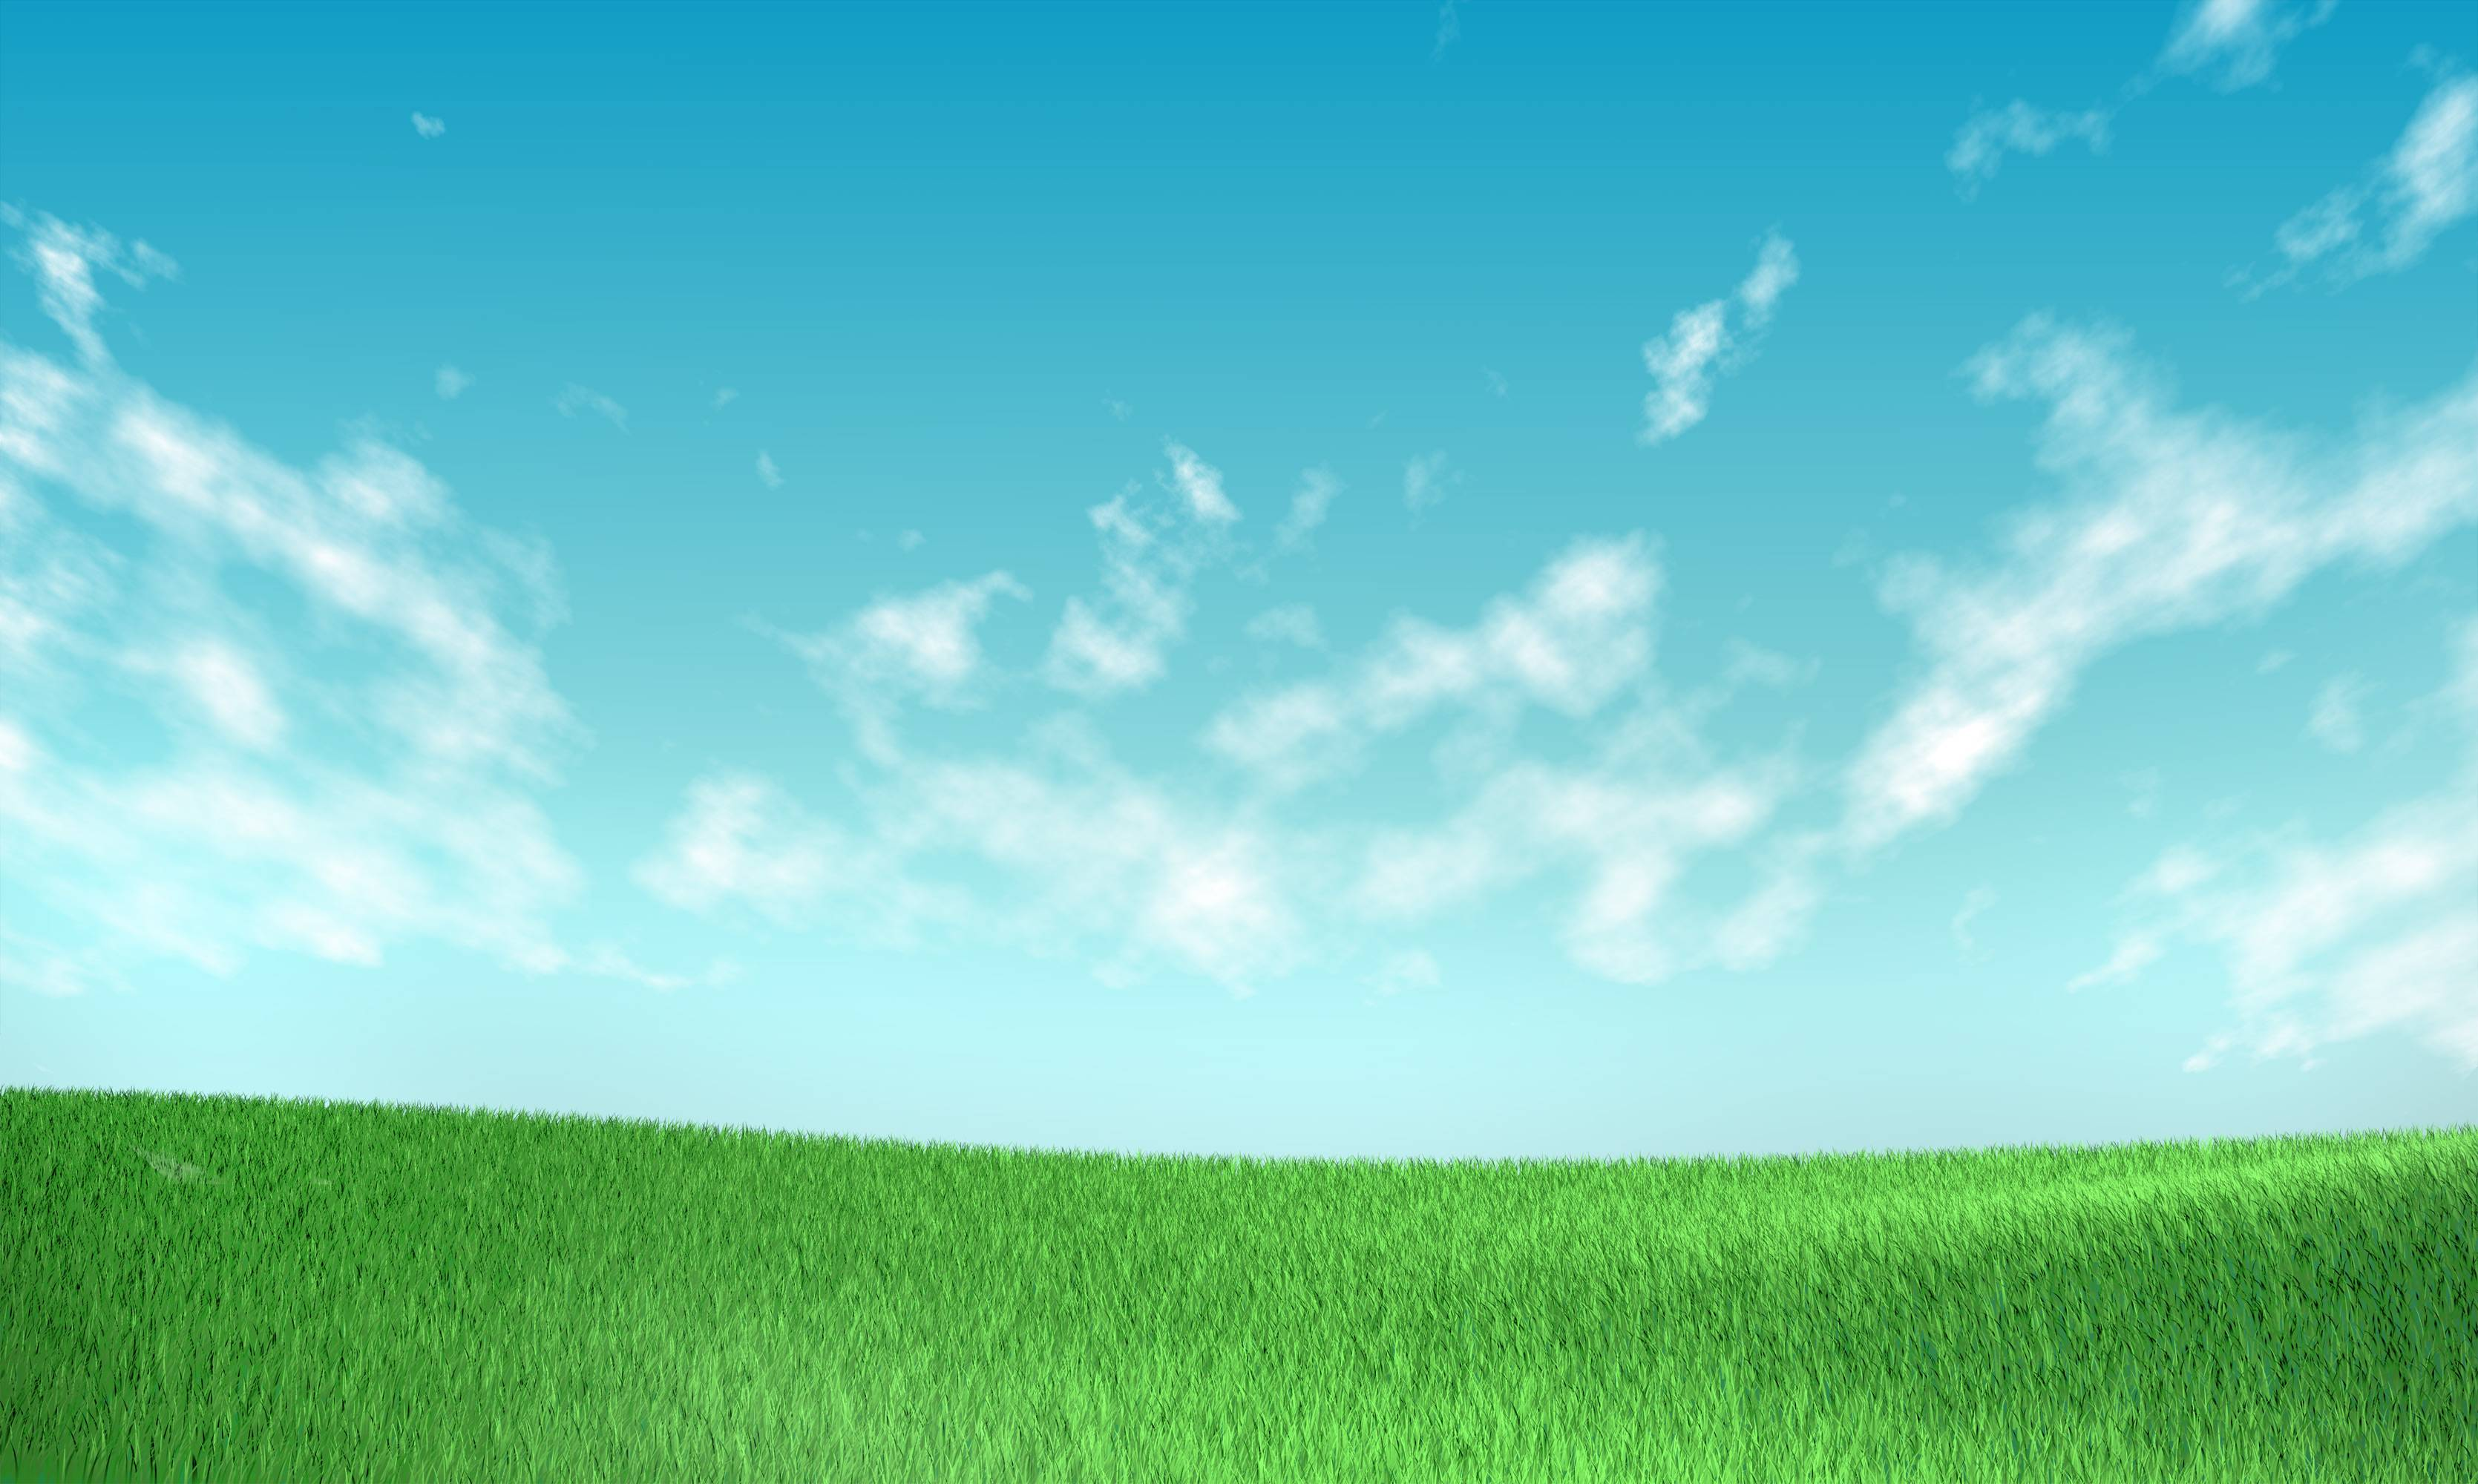 Faded sky with grass and trees clipart image free download Background sky images - SF Wallpaper image free download